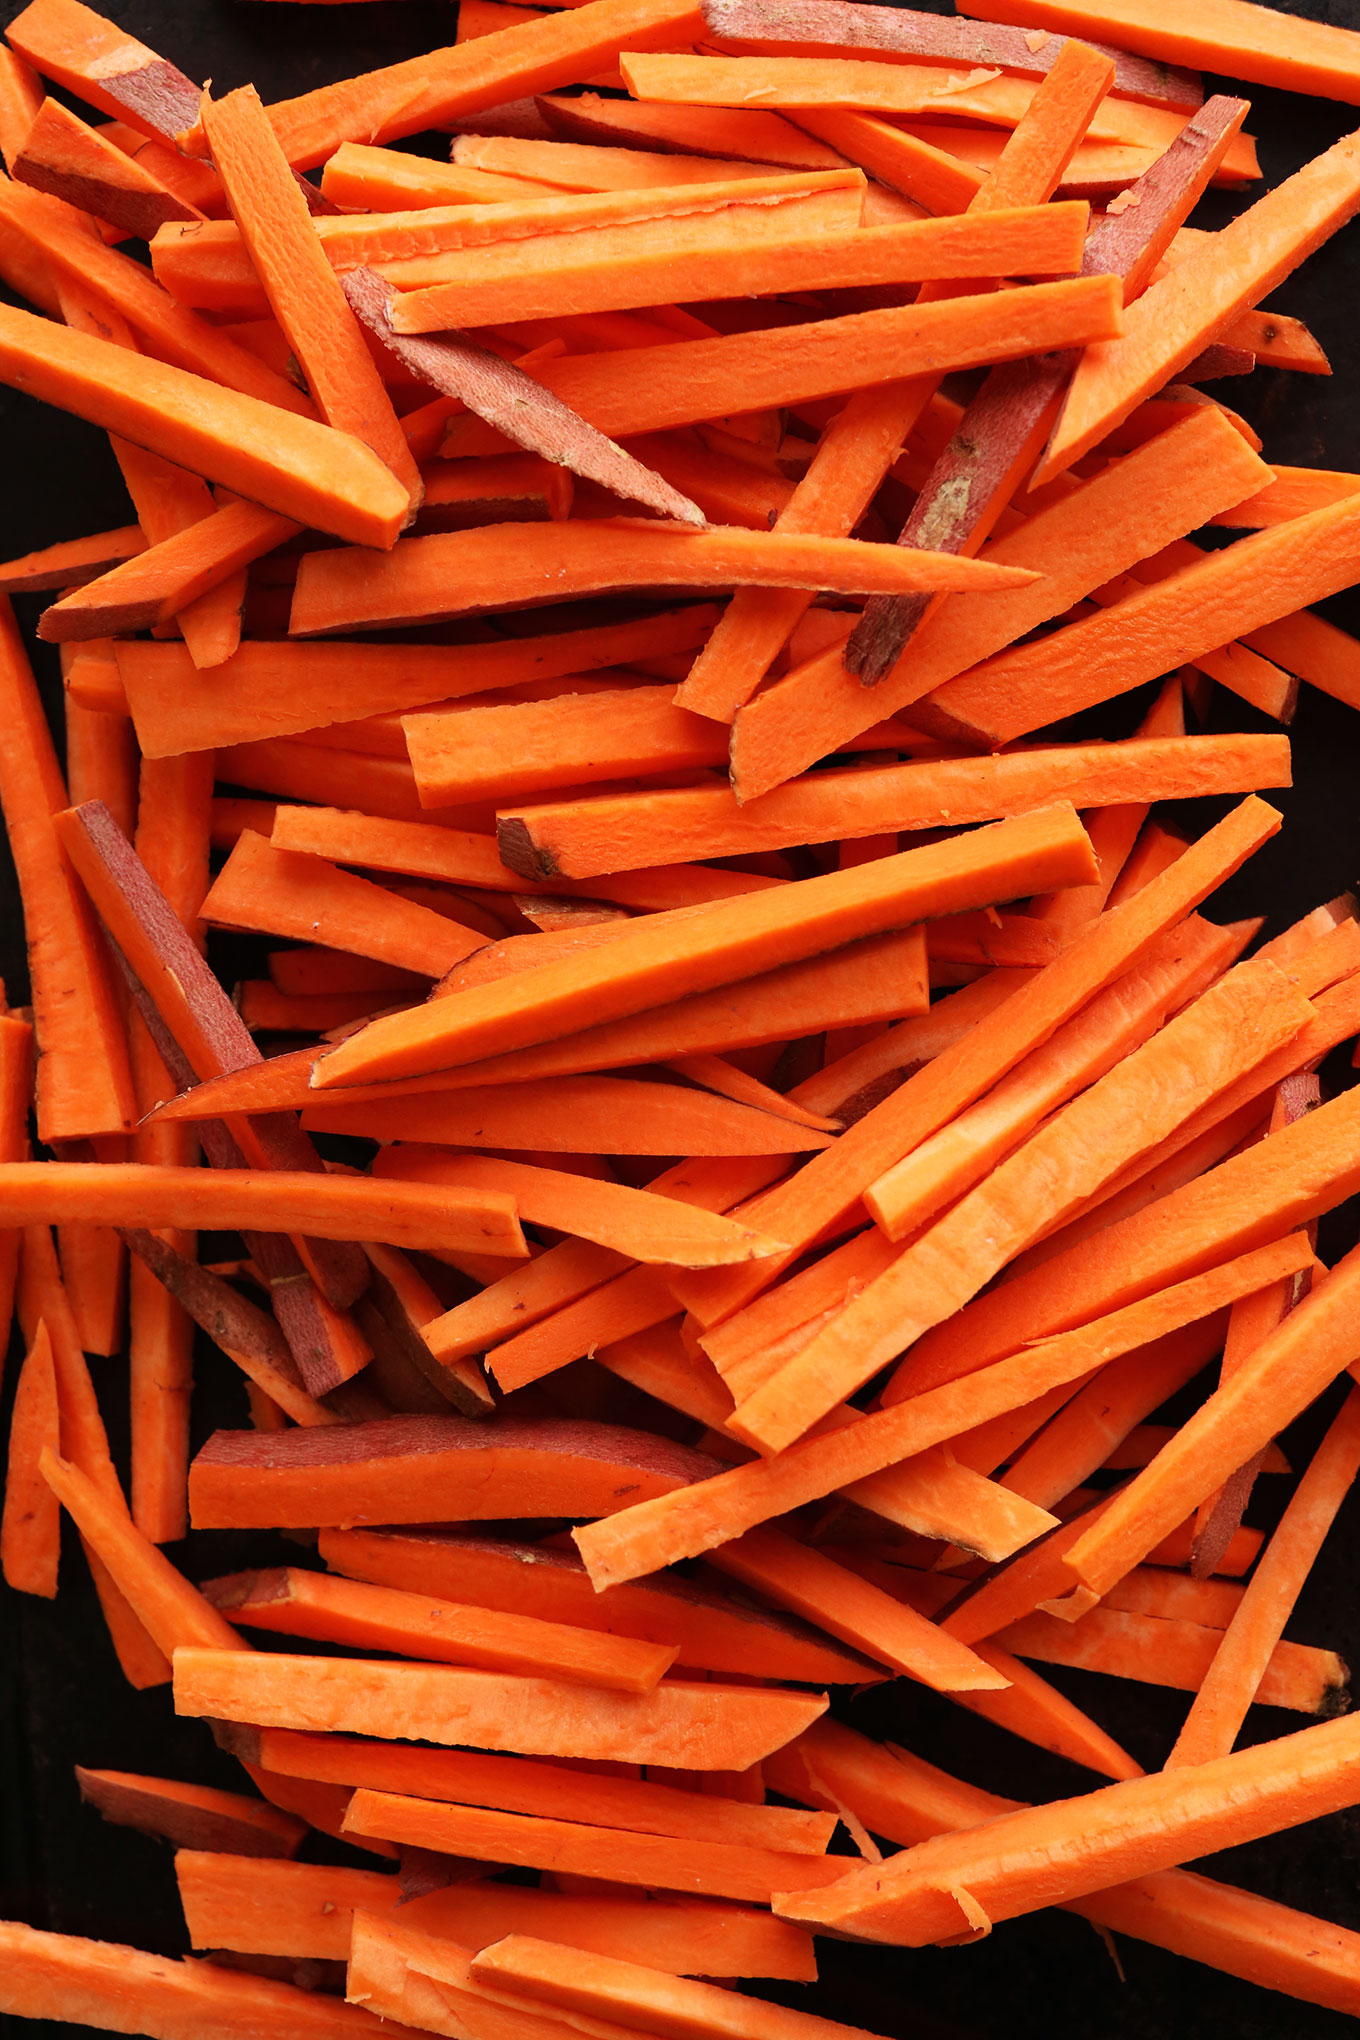 Sliced sweet potatoes for making perfectly baked Sweet Potato Fries